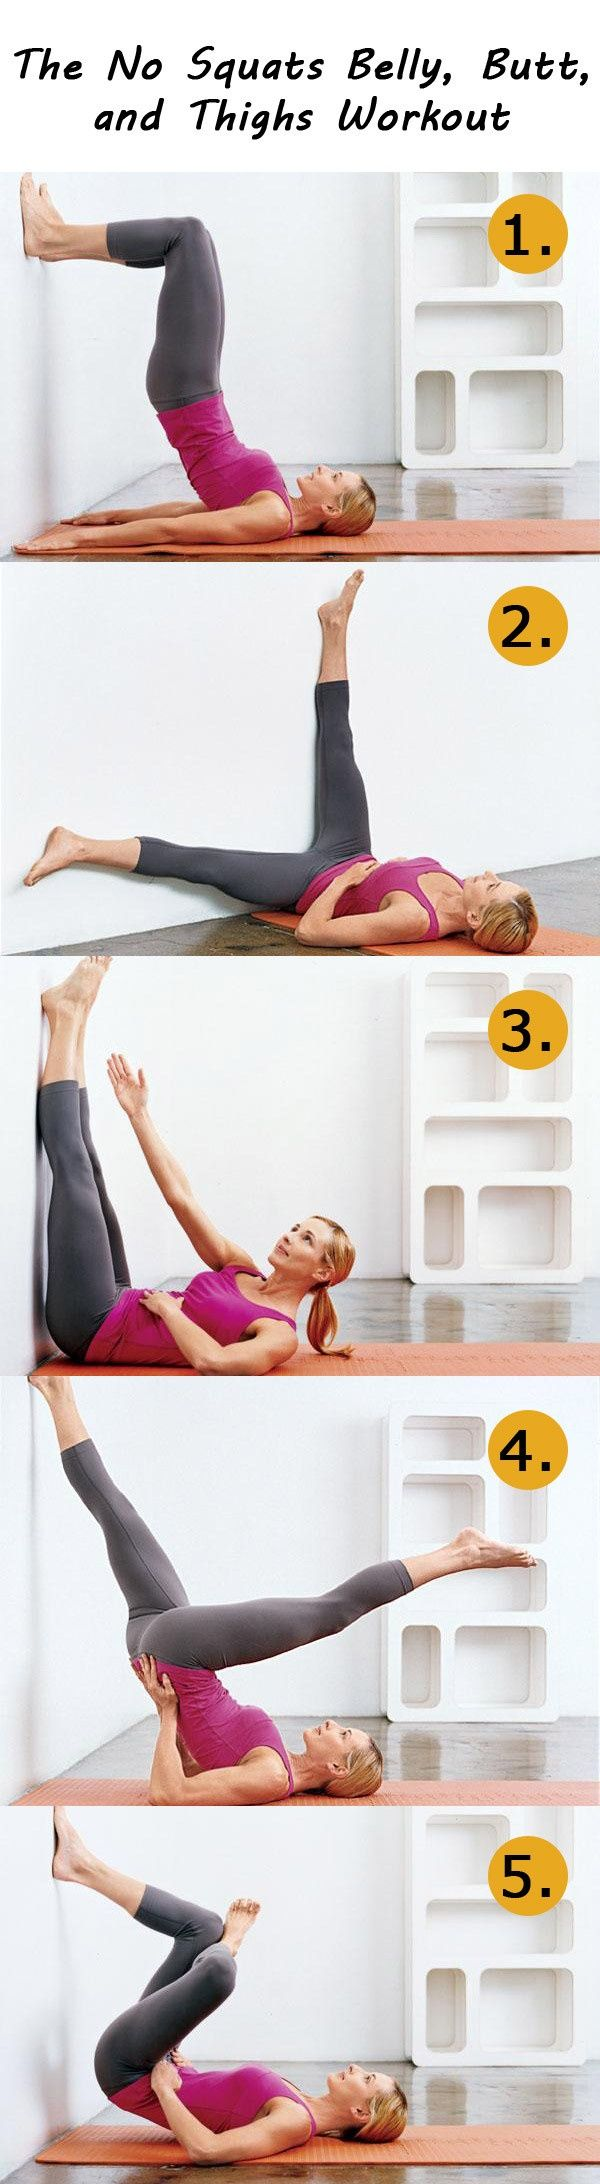 With this fantastic workout routine you will be able to flatten your belly, slim your thighs, and firm your butt in 2 weeks!   http://bootcampmaitland.com.au/maitland-personal-trainers/